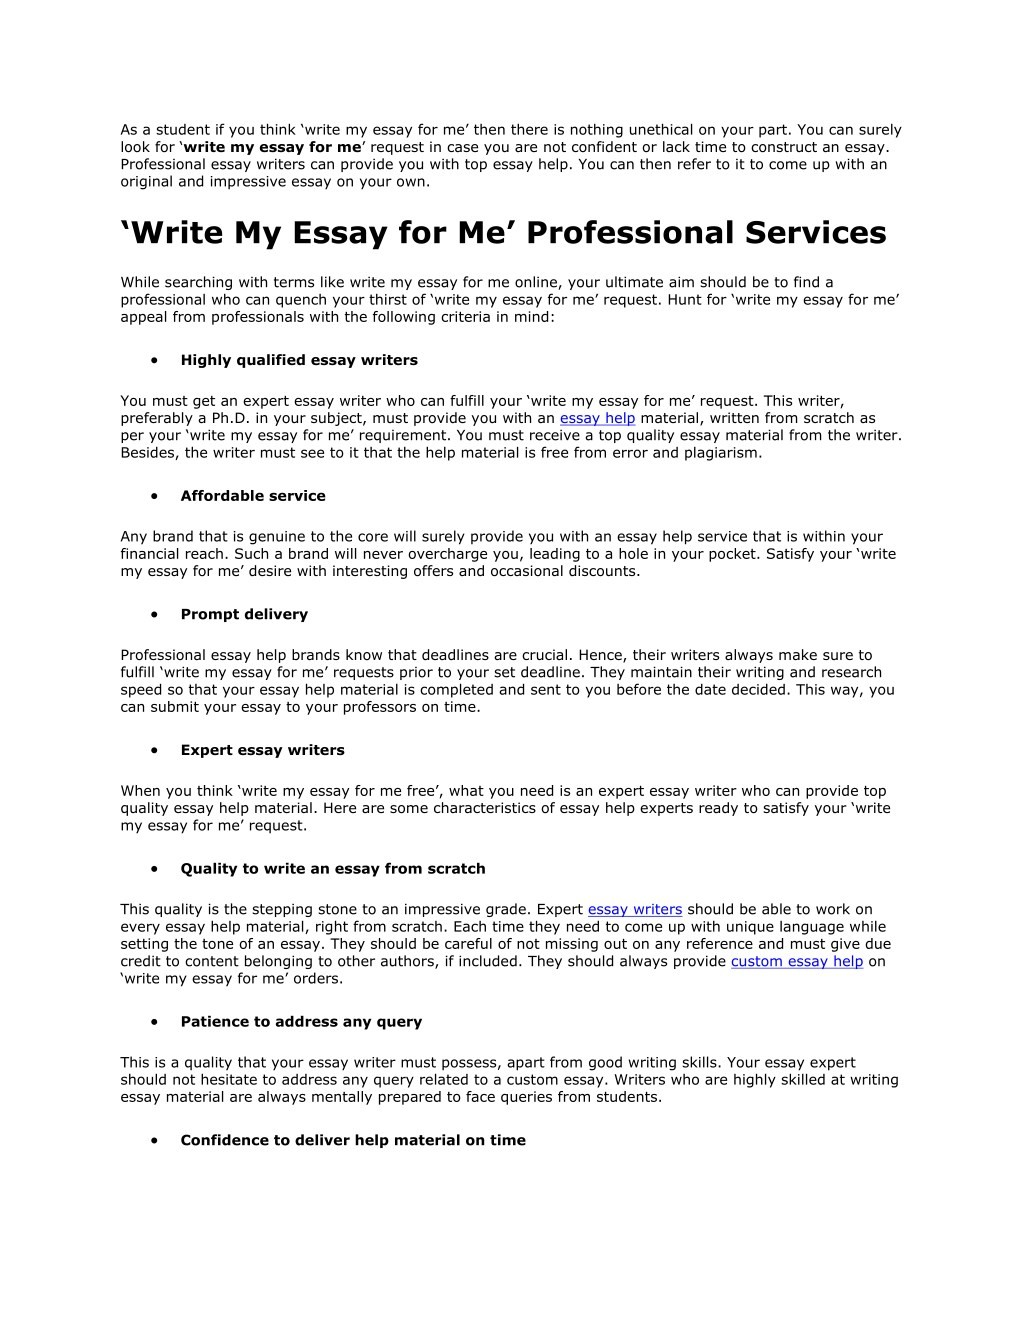 017 Write My Essay For Me Example As Student If You Think Surprising Free Online Generator Large